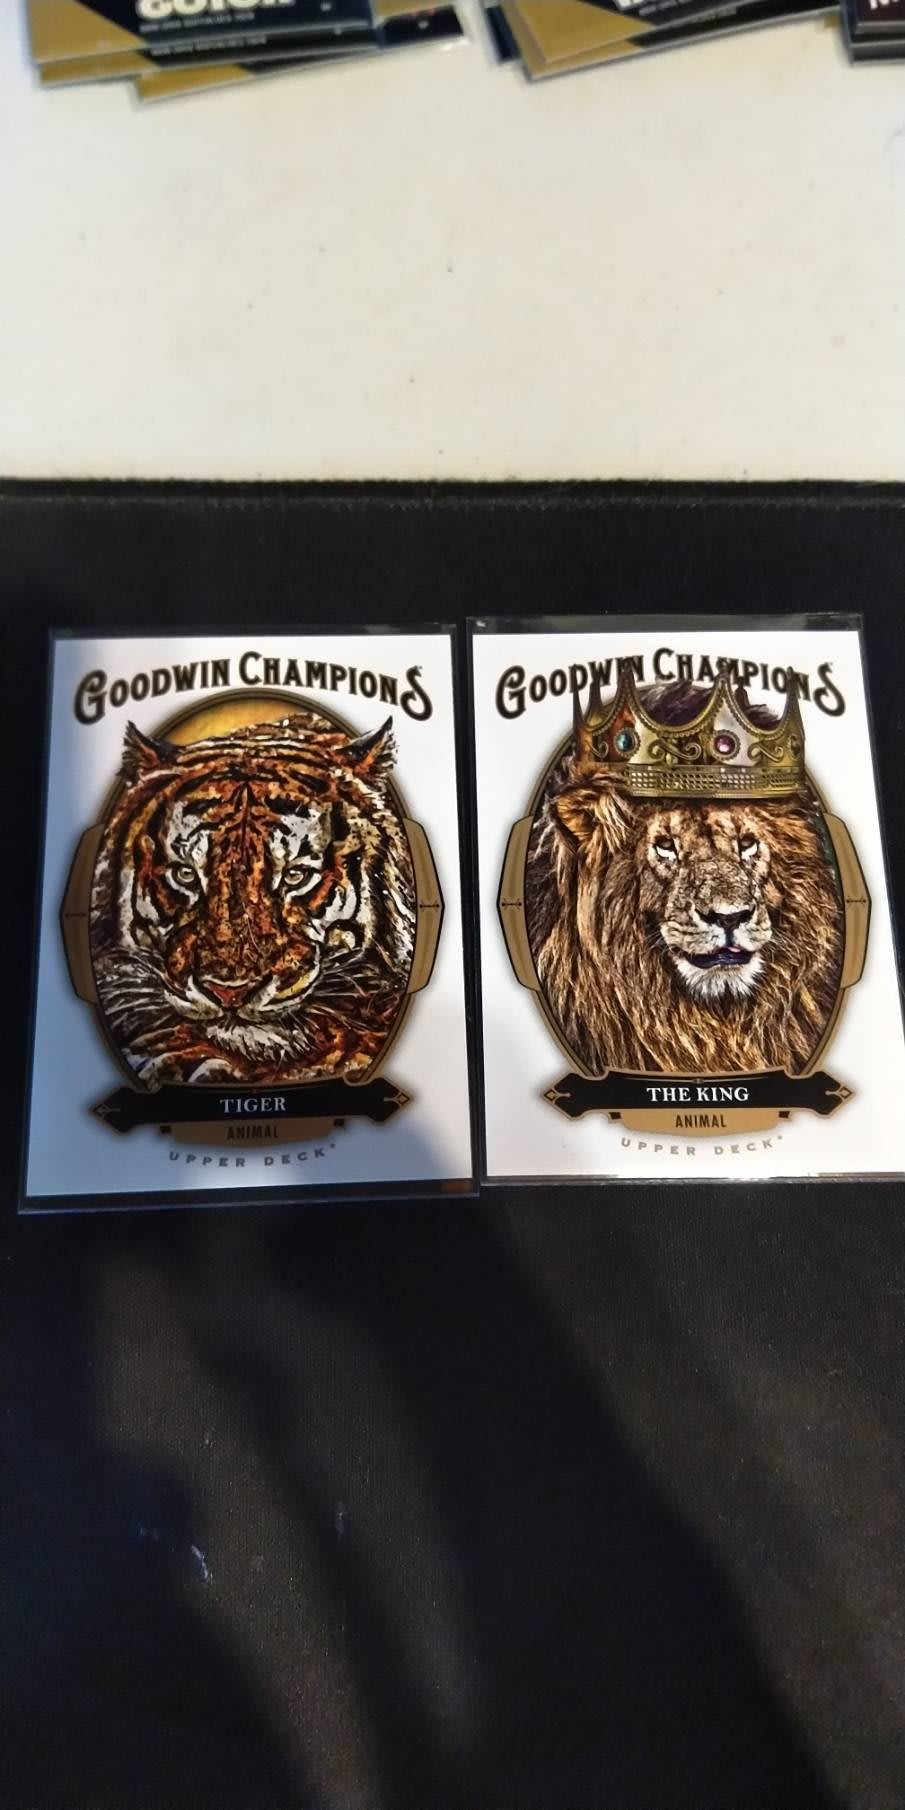 THE KING THE TIGER 編號11 編號 44 兩張 2020 GOODWIN CHAMPIONS